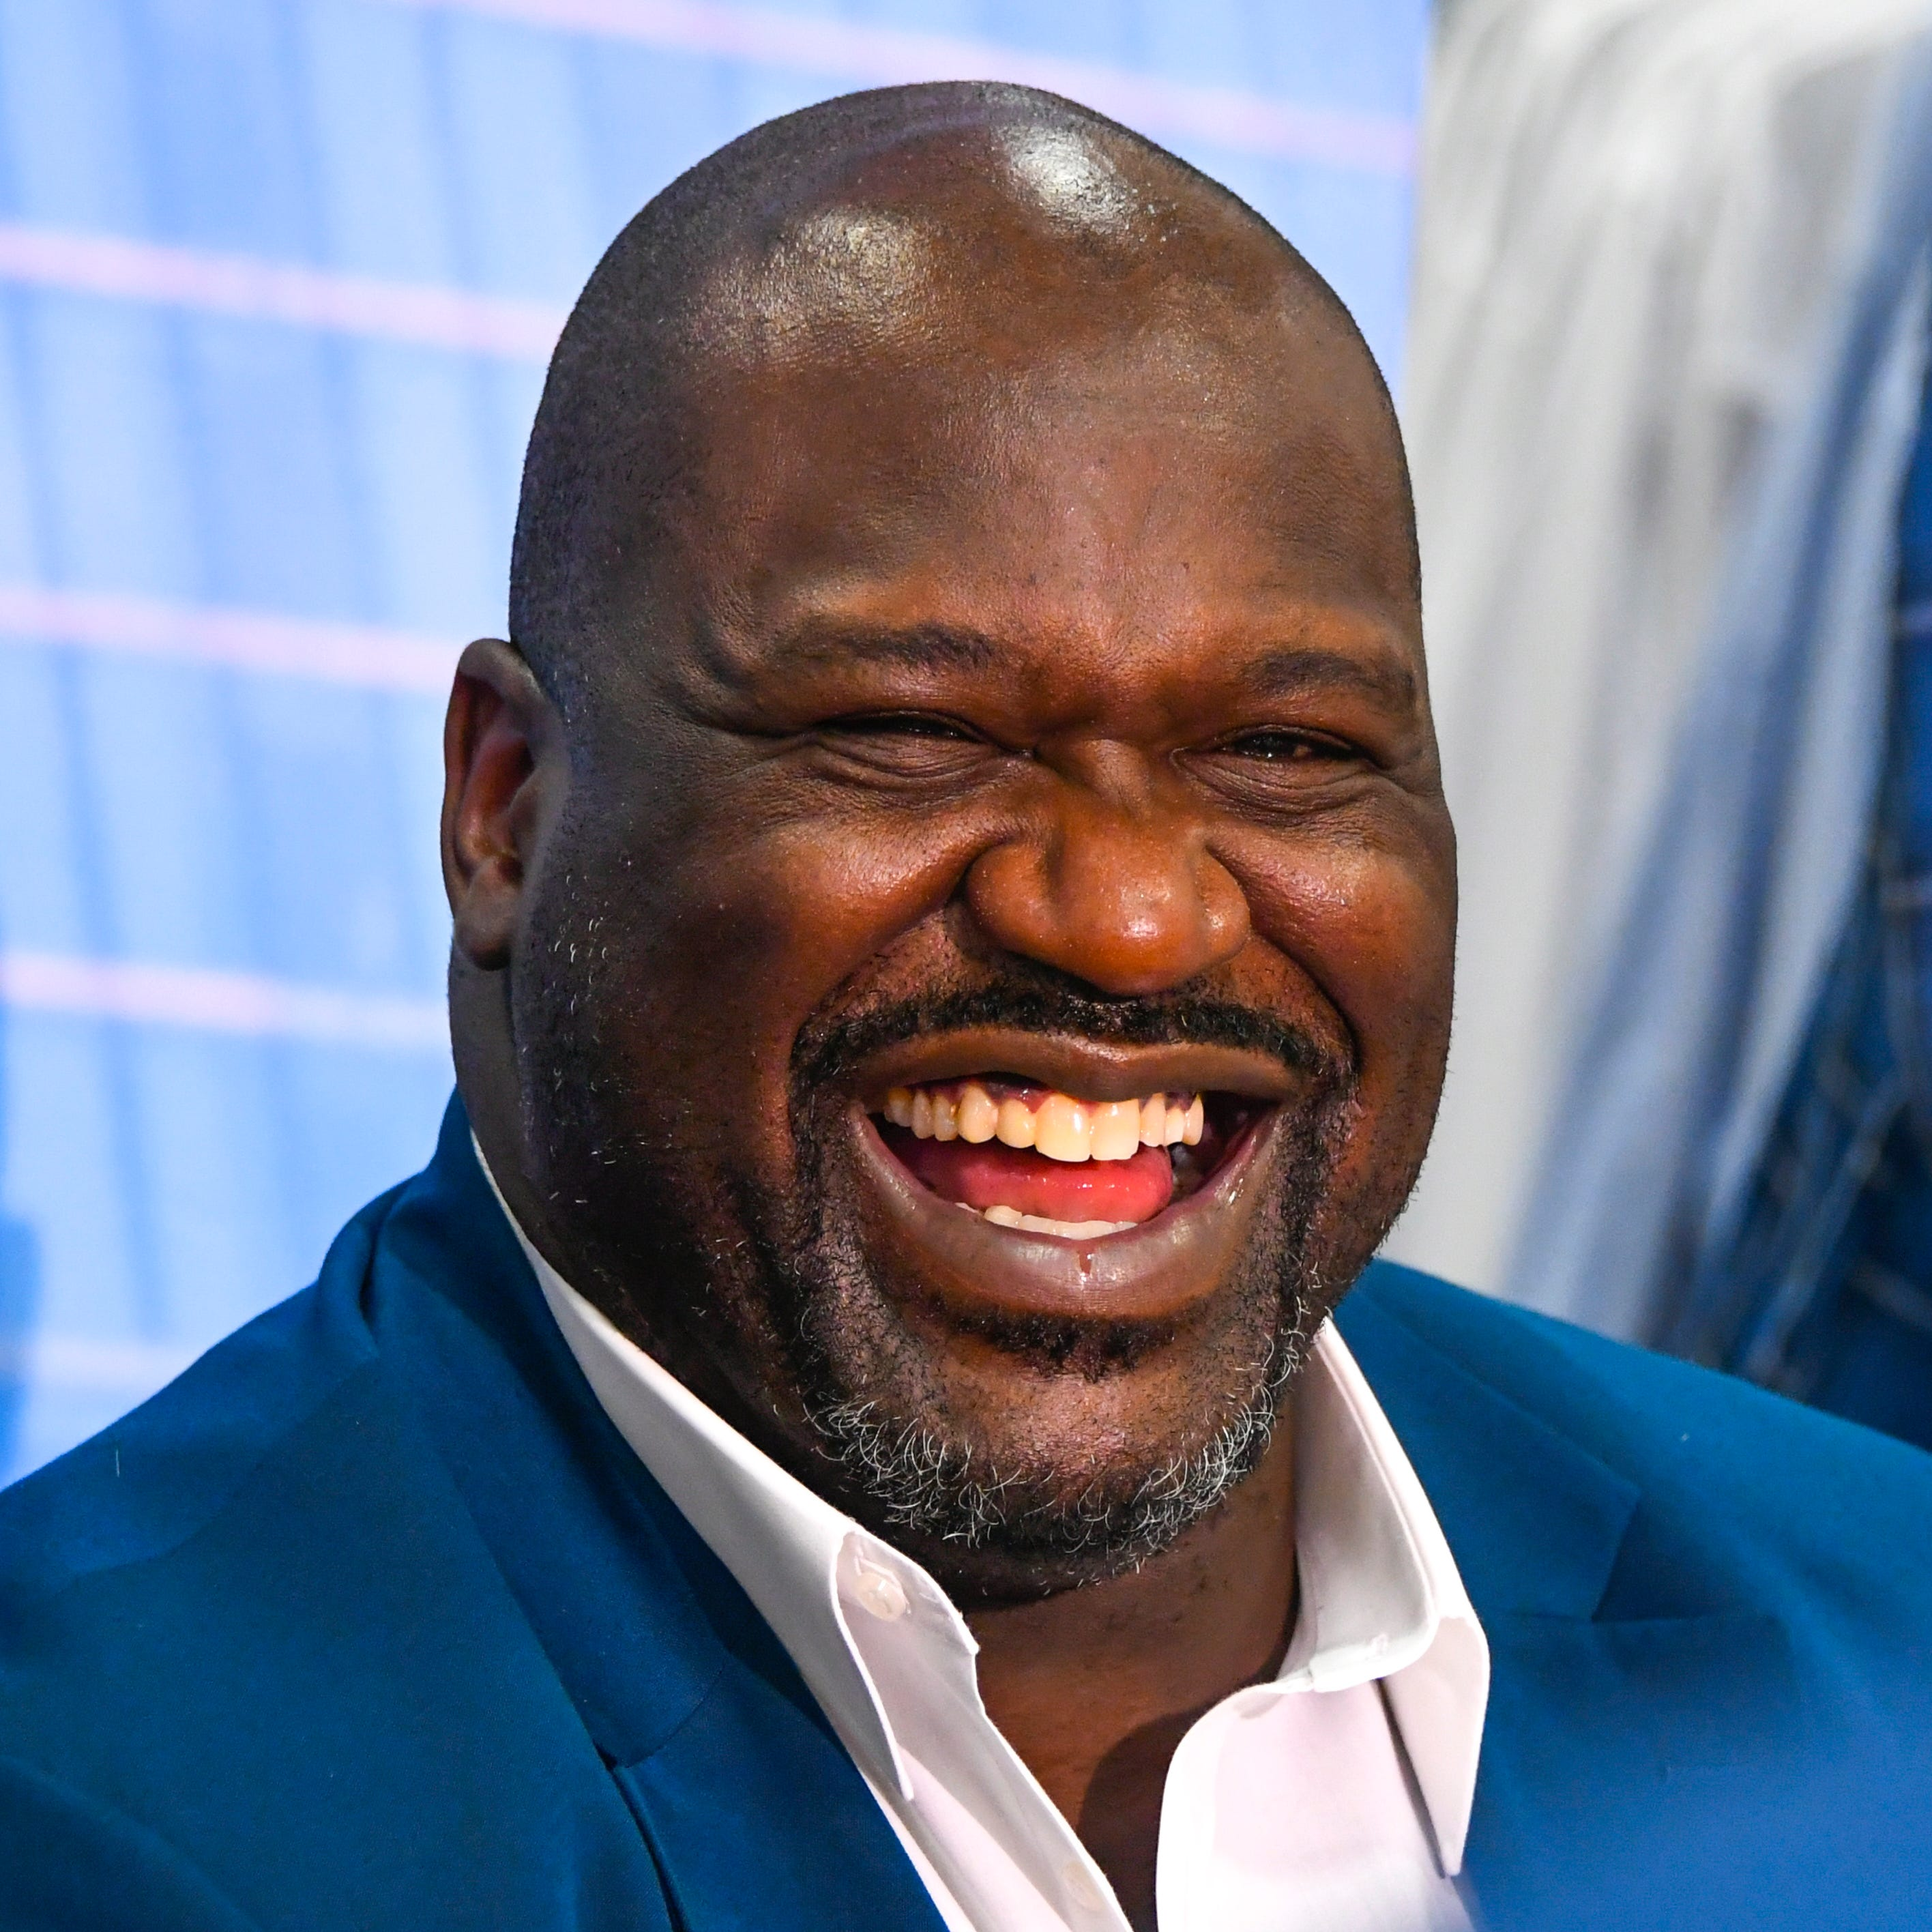 Shaq will be heading to Lucid Light Lounge after announcing 'Inside the NBA' in Milwaukee